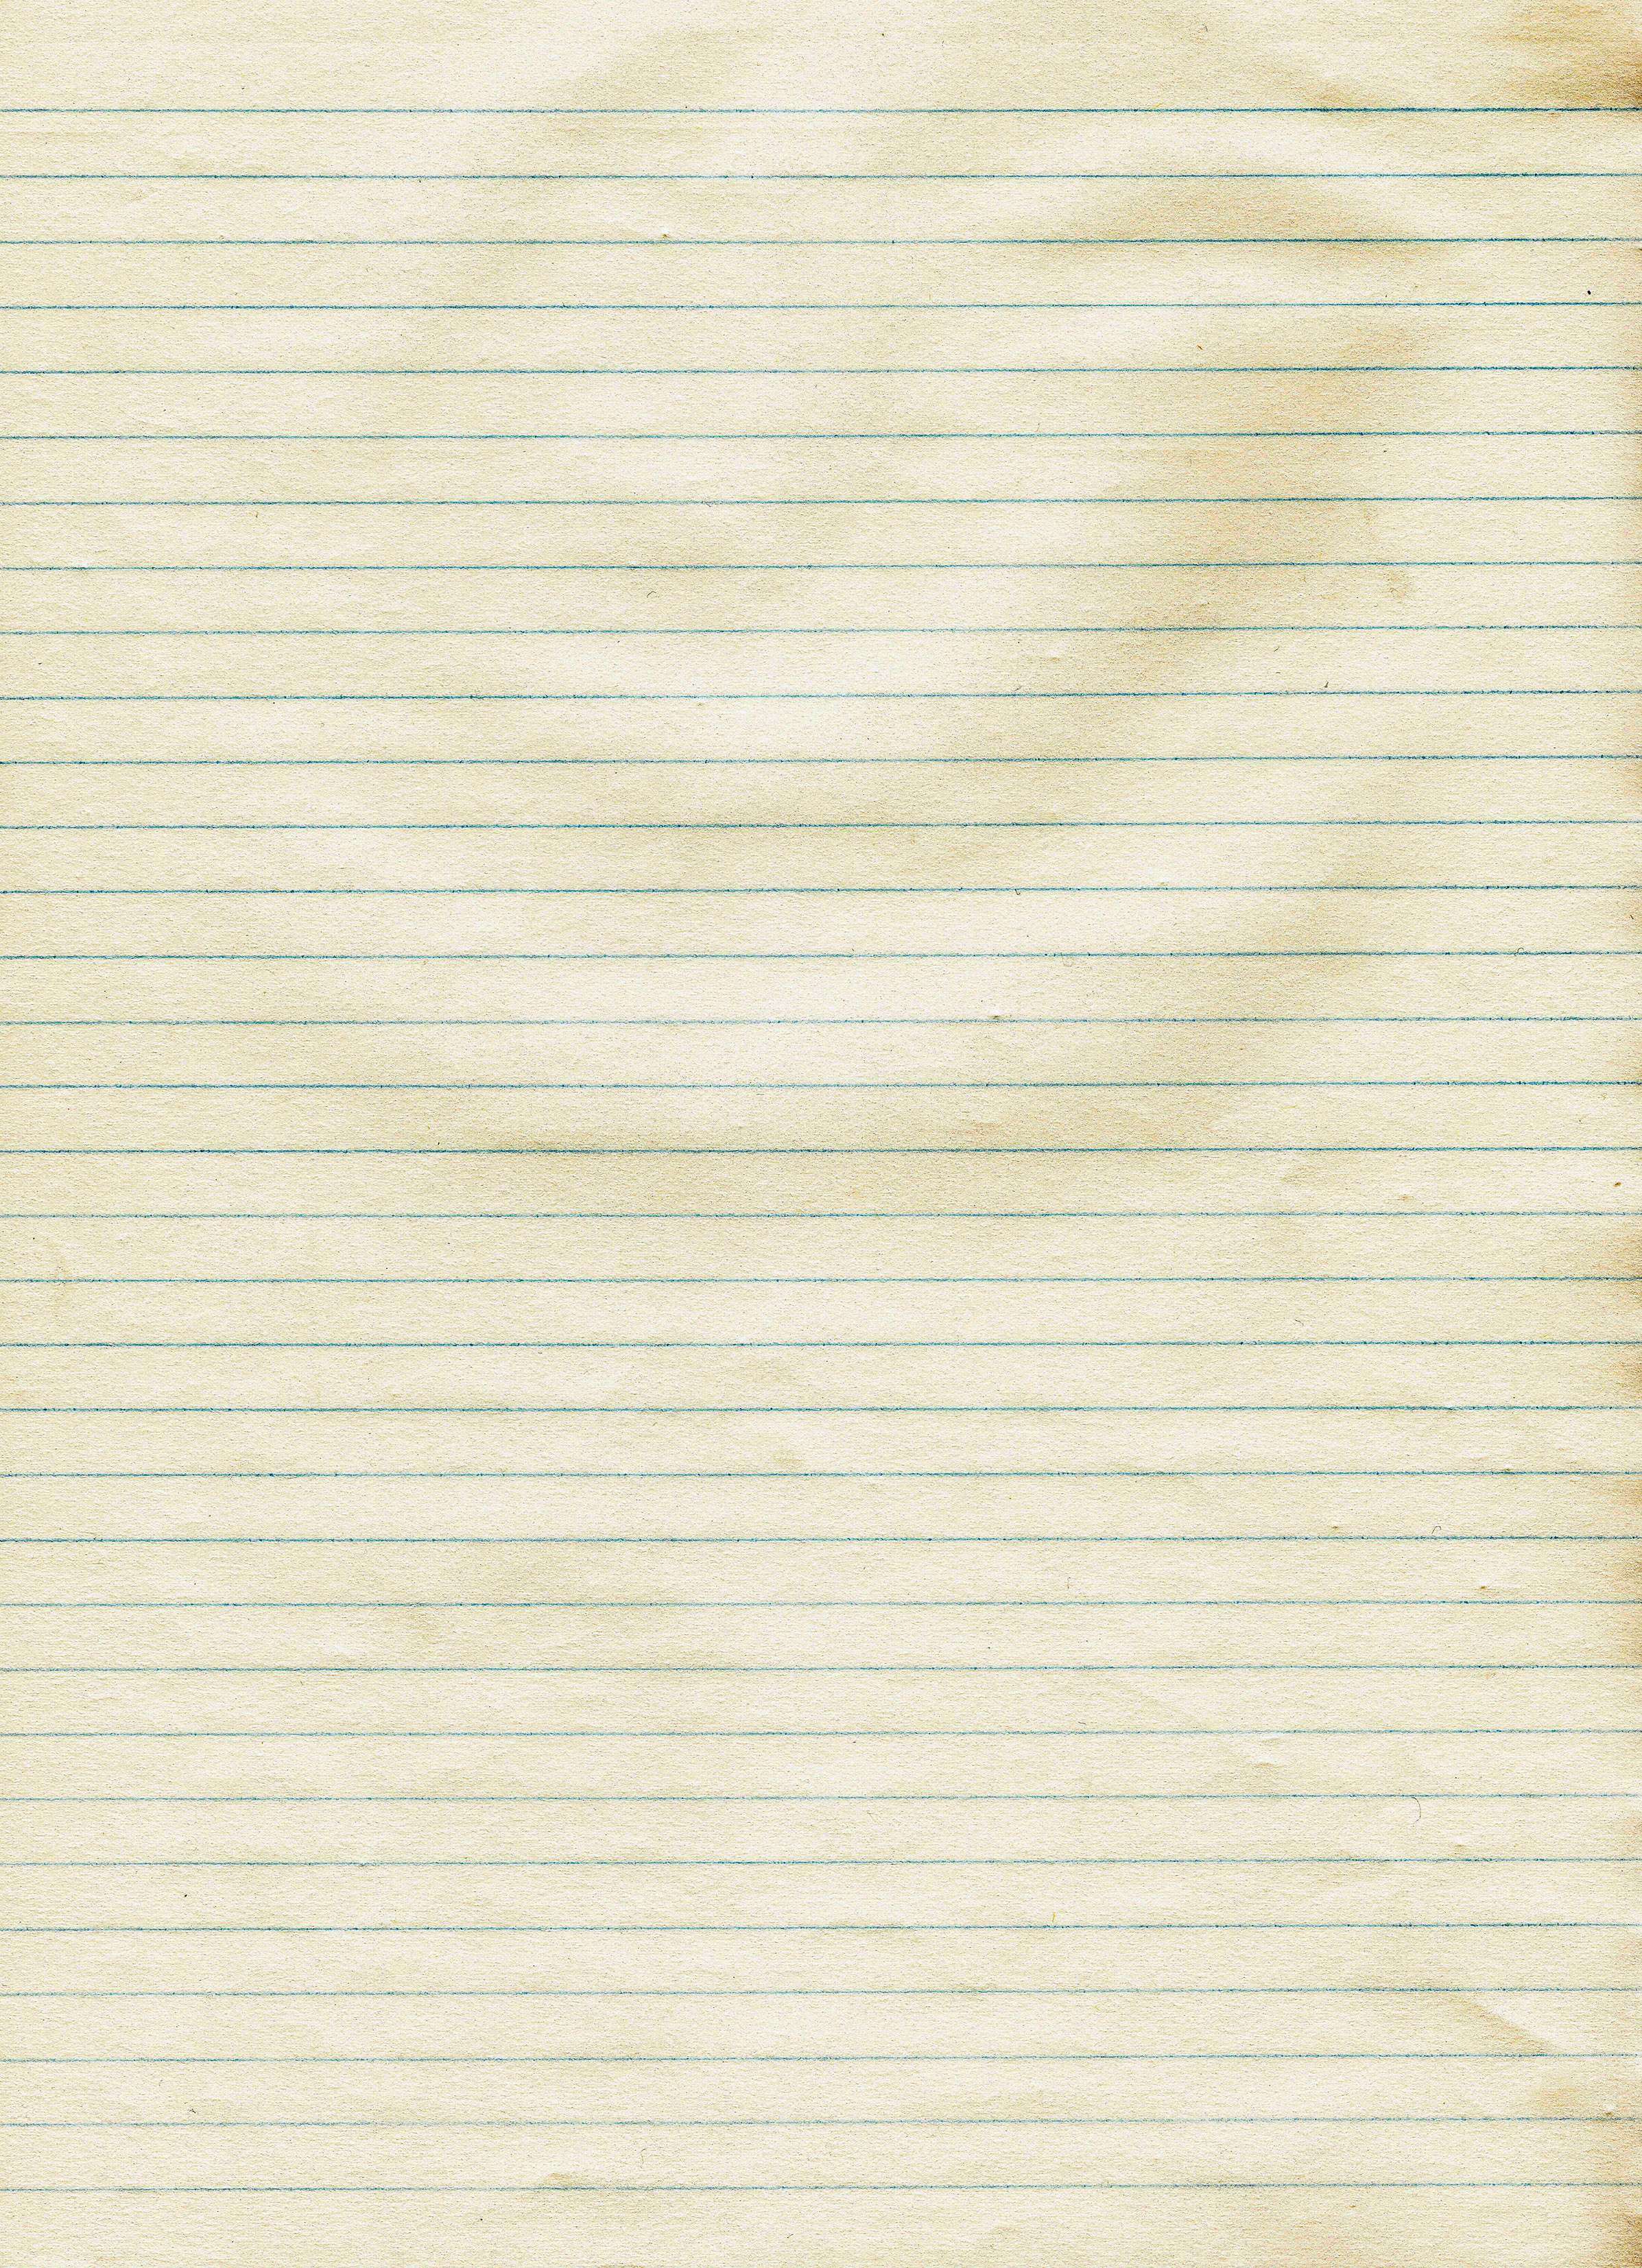 Free Download Lined Paper By Ll Stock 2394x3307 For Your Desktop